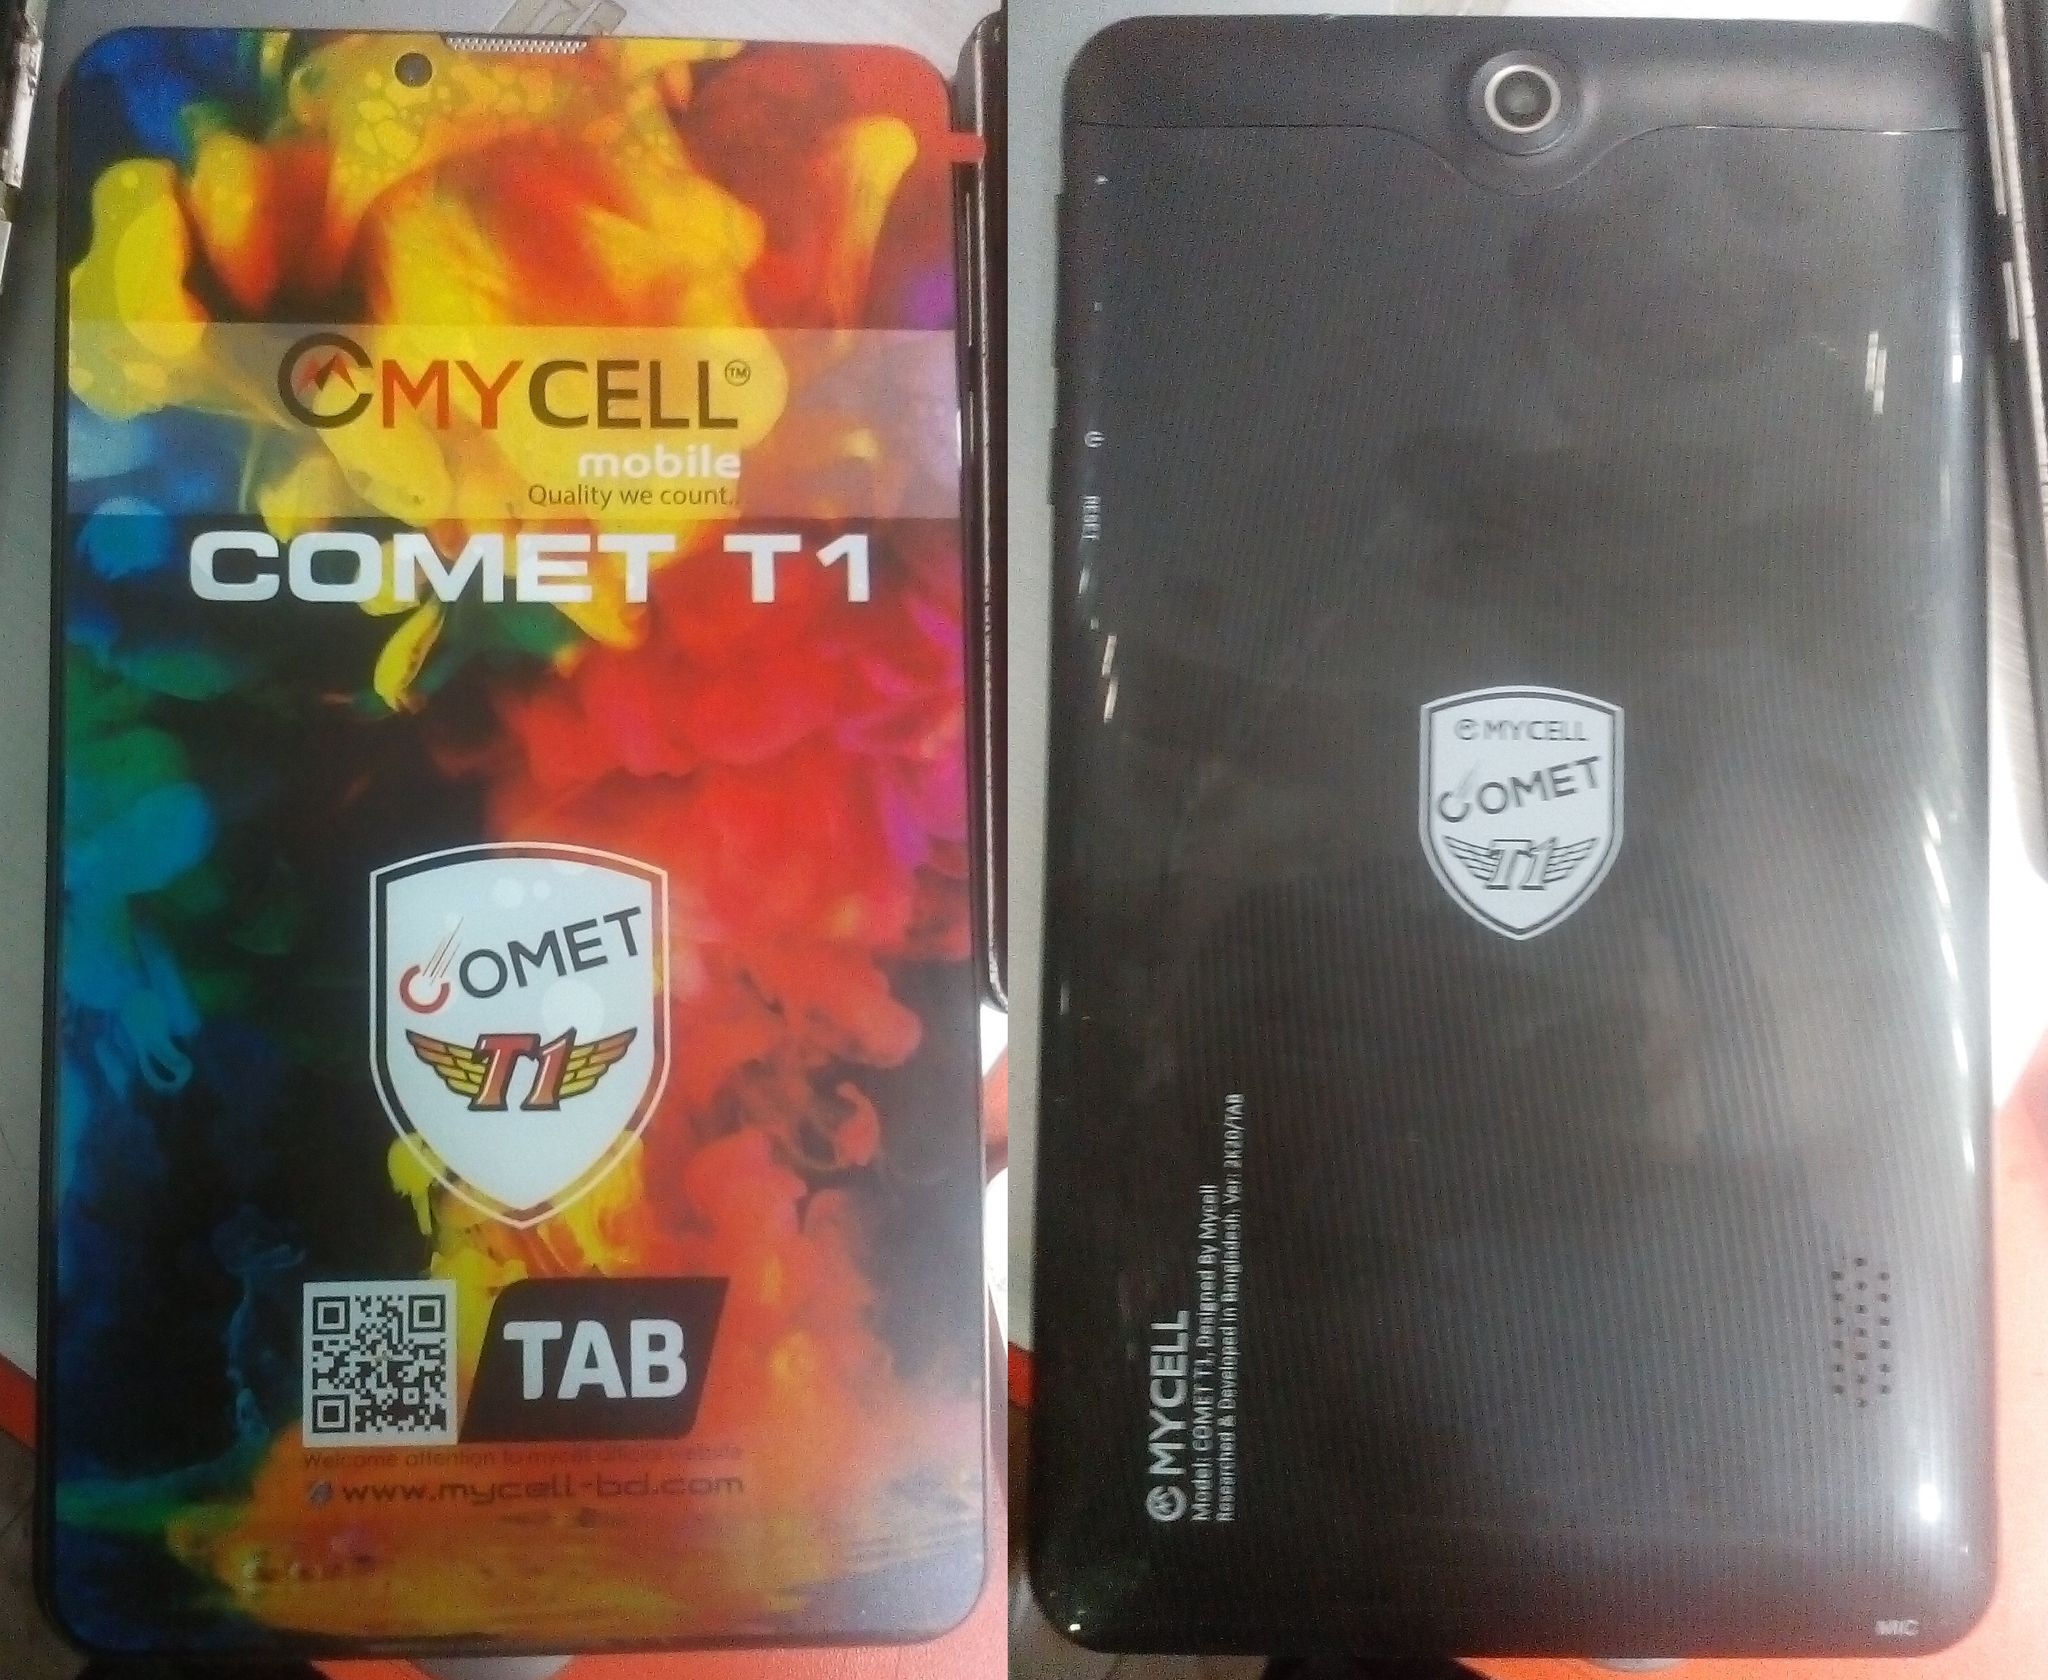 Mycell Comte T1 flash file